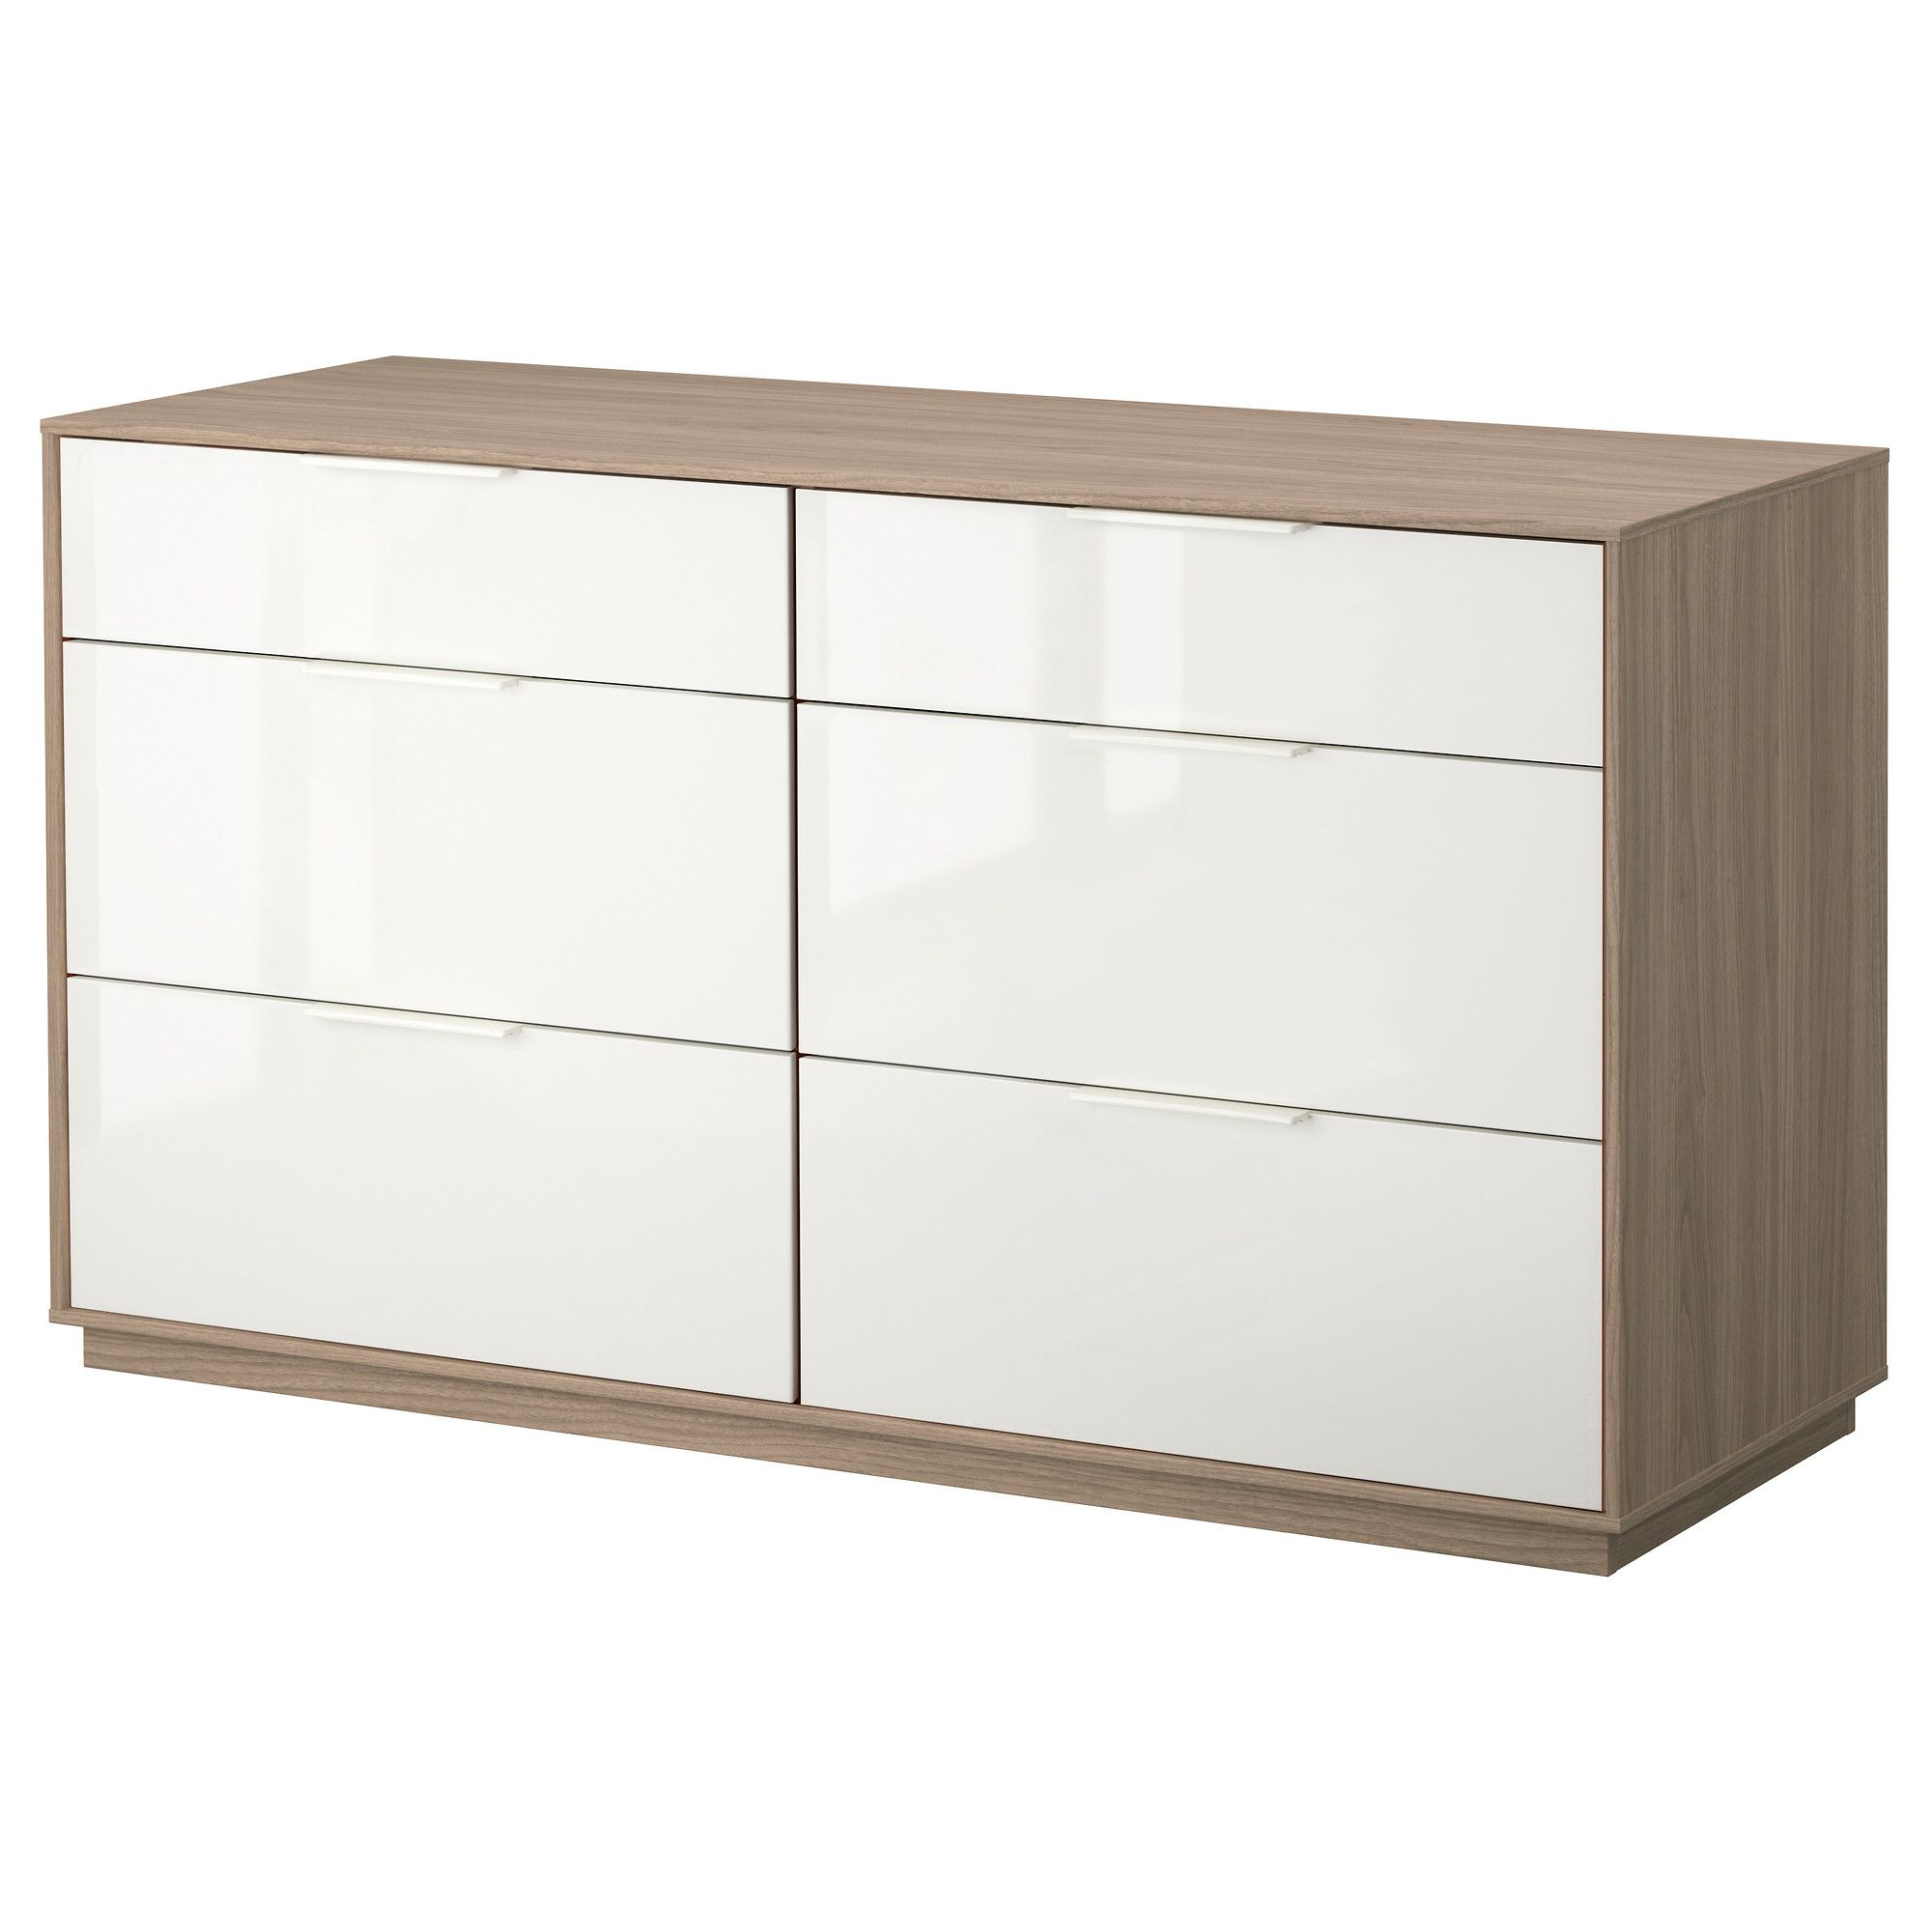 malm ikea buy dresser drawer cheap storage off white dressers